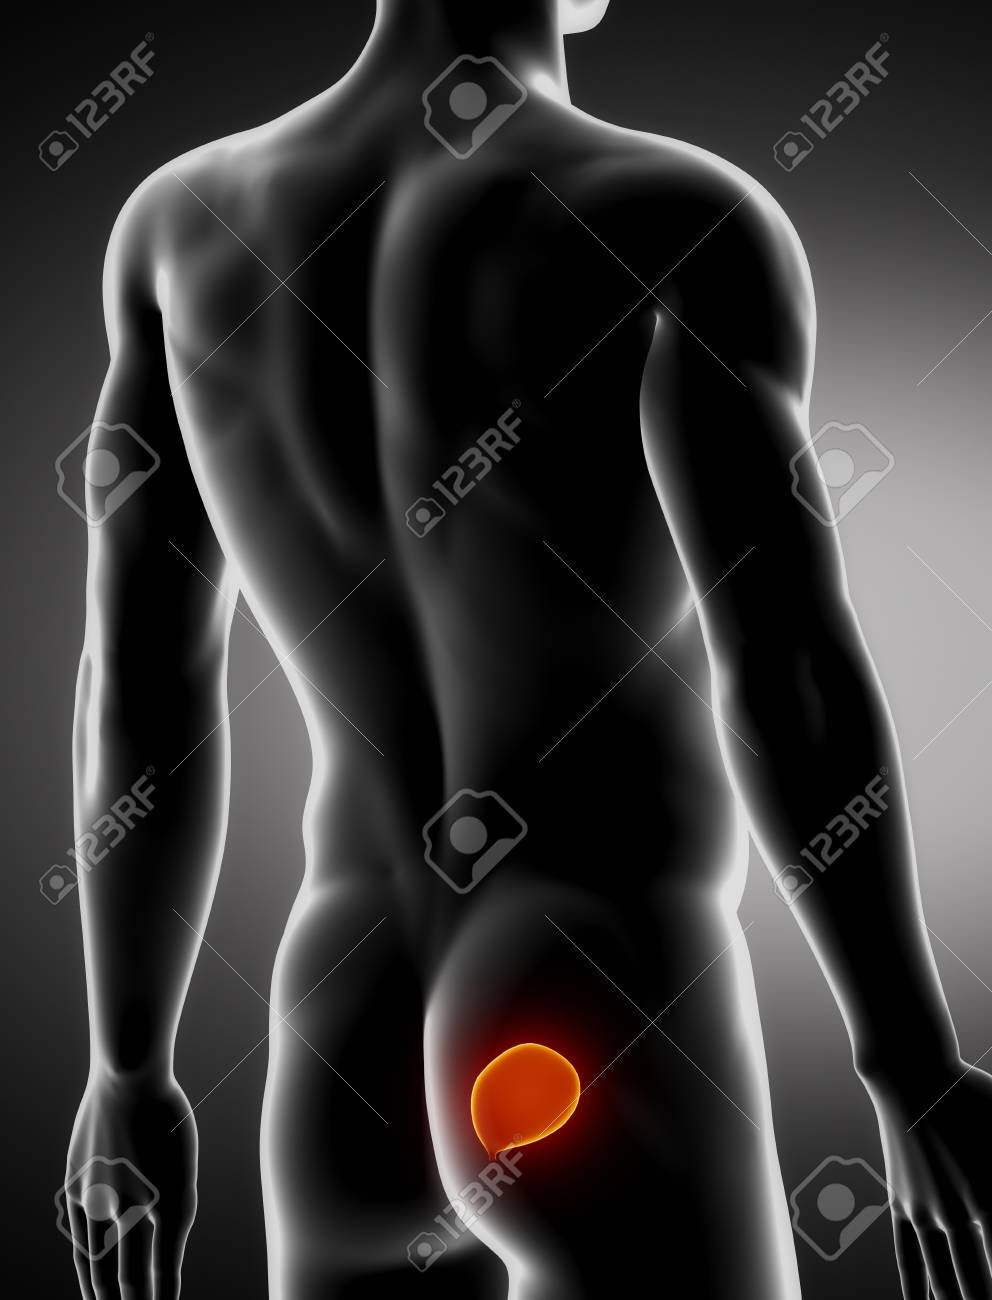 Bladder male anatomy lateral x-ray view Stock Photo - 20901984